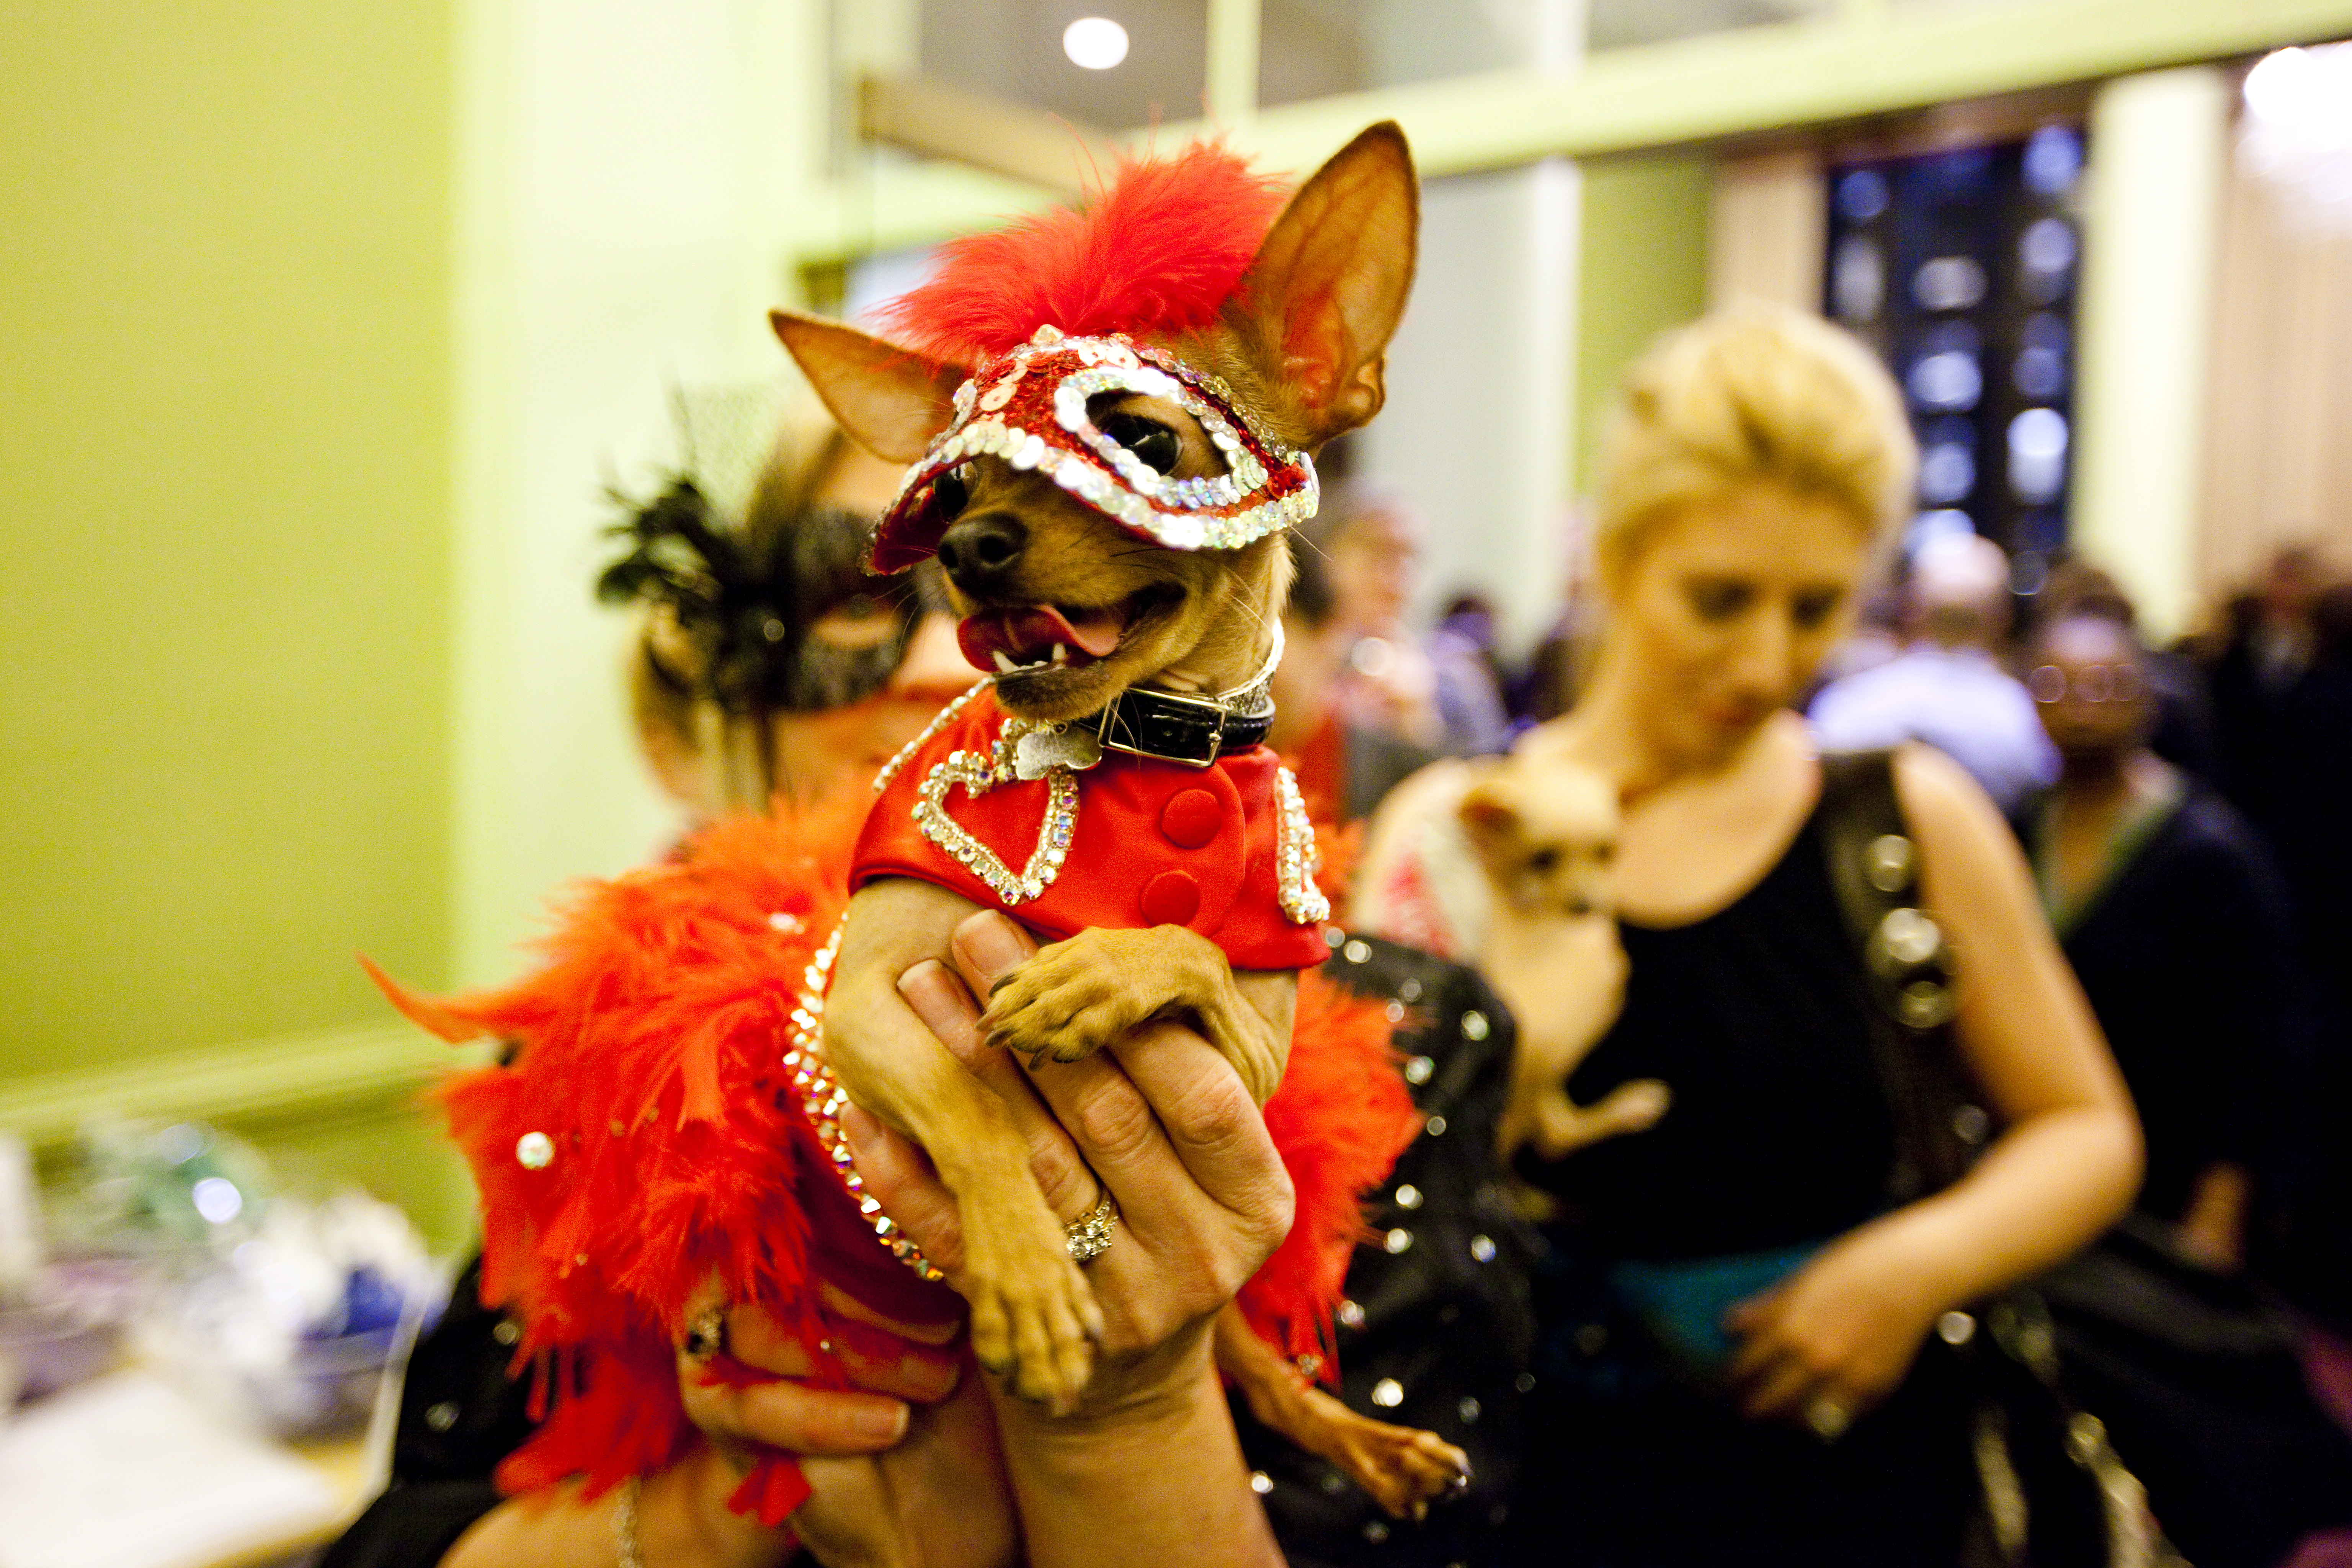 Dixie Belle may be a nursing home volunteer dog, but she's just as glamorous as the show dogs!